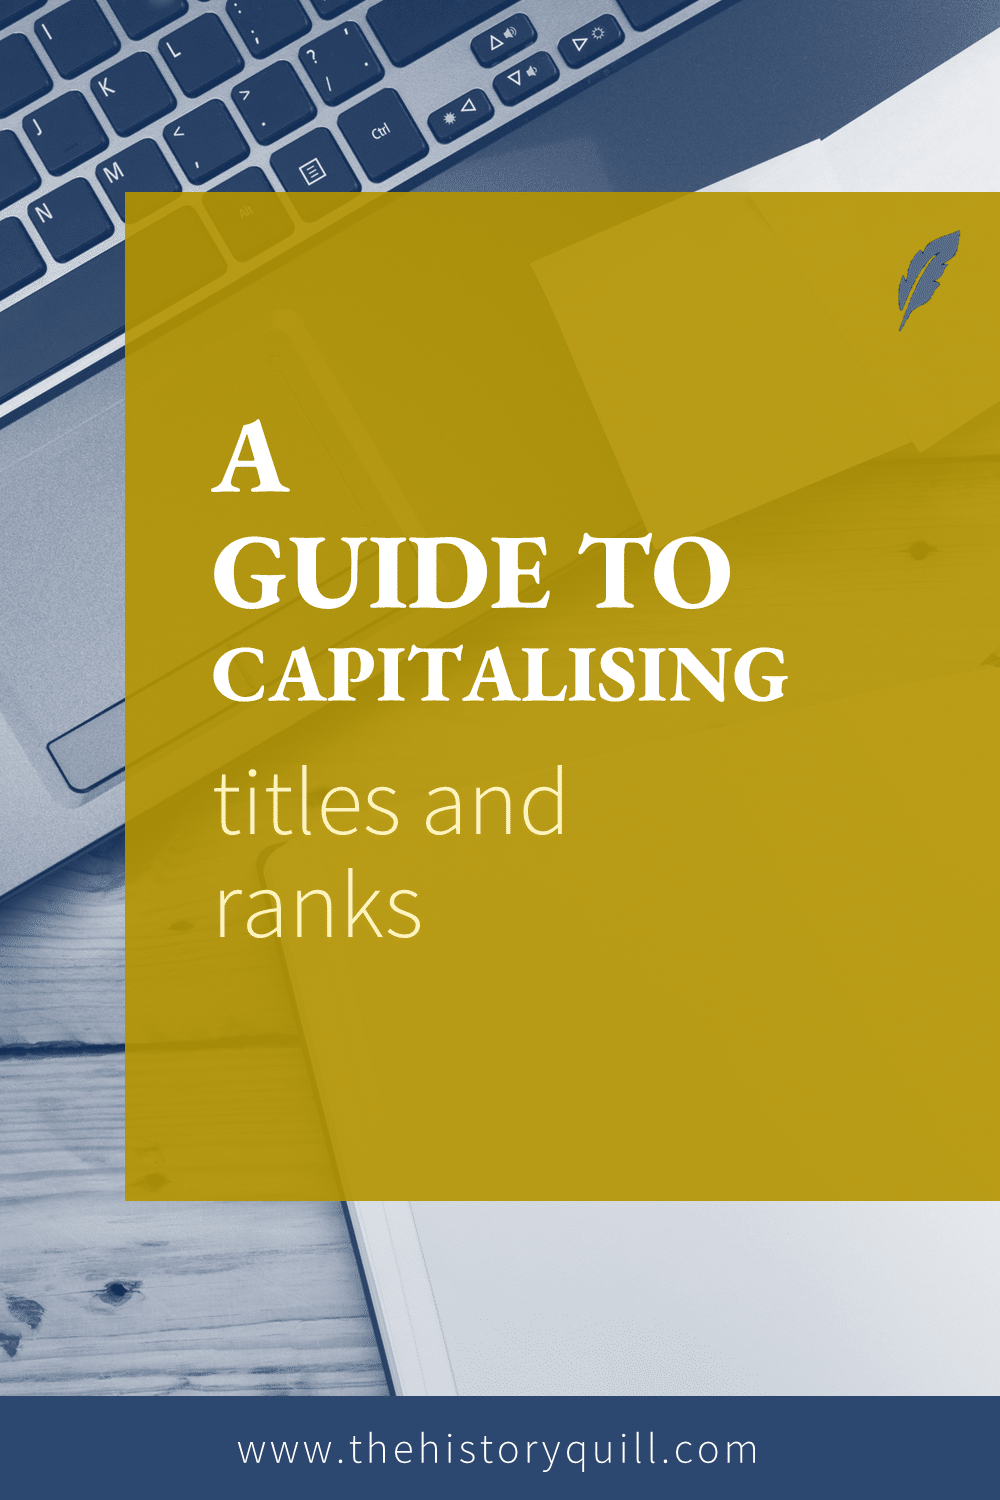 From The History Quill blog, a guide to capitalising titles and ranks within historical writing.